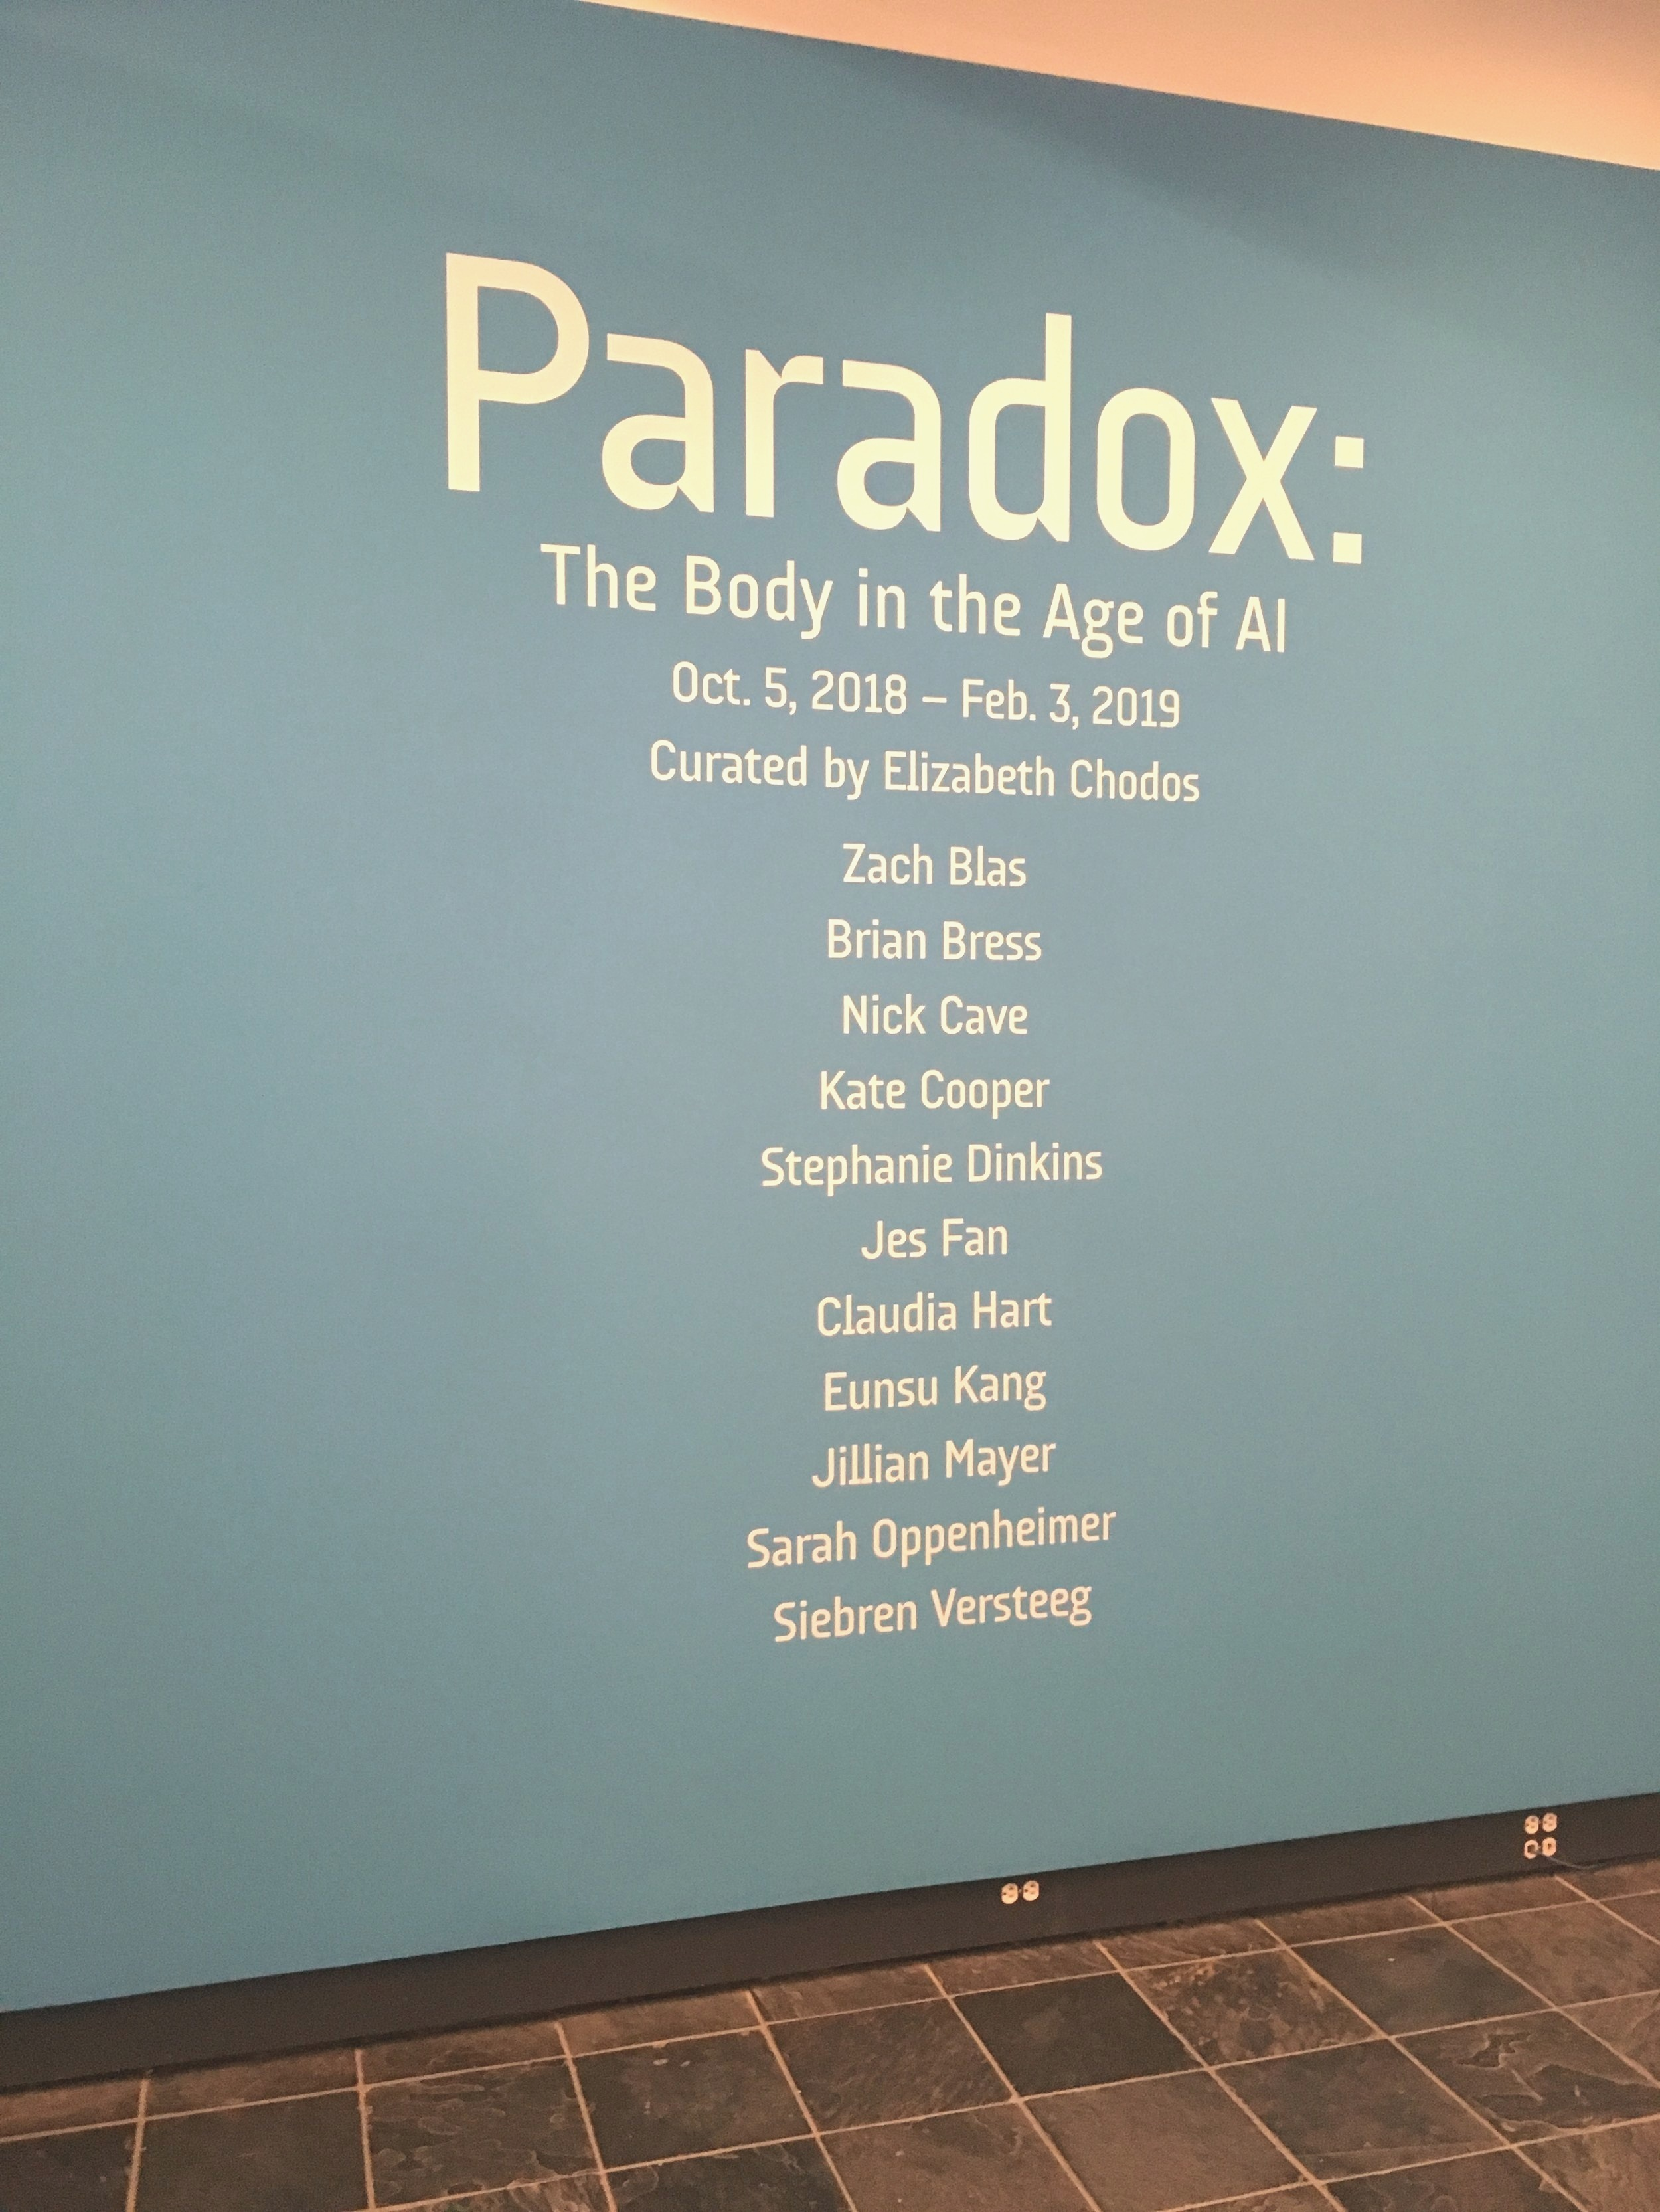 Entrance wall text for the exhibition at the MICA.